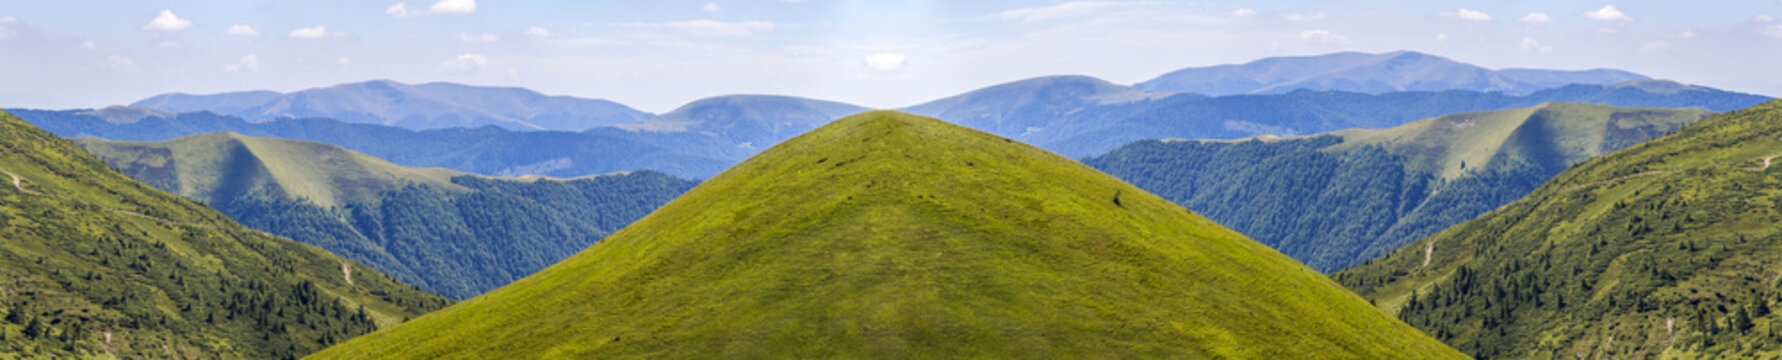 Panorama of green hills in summer mountains